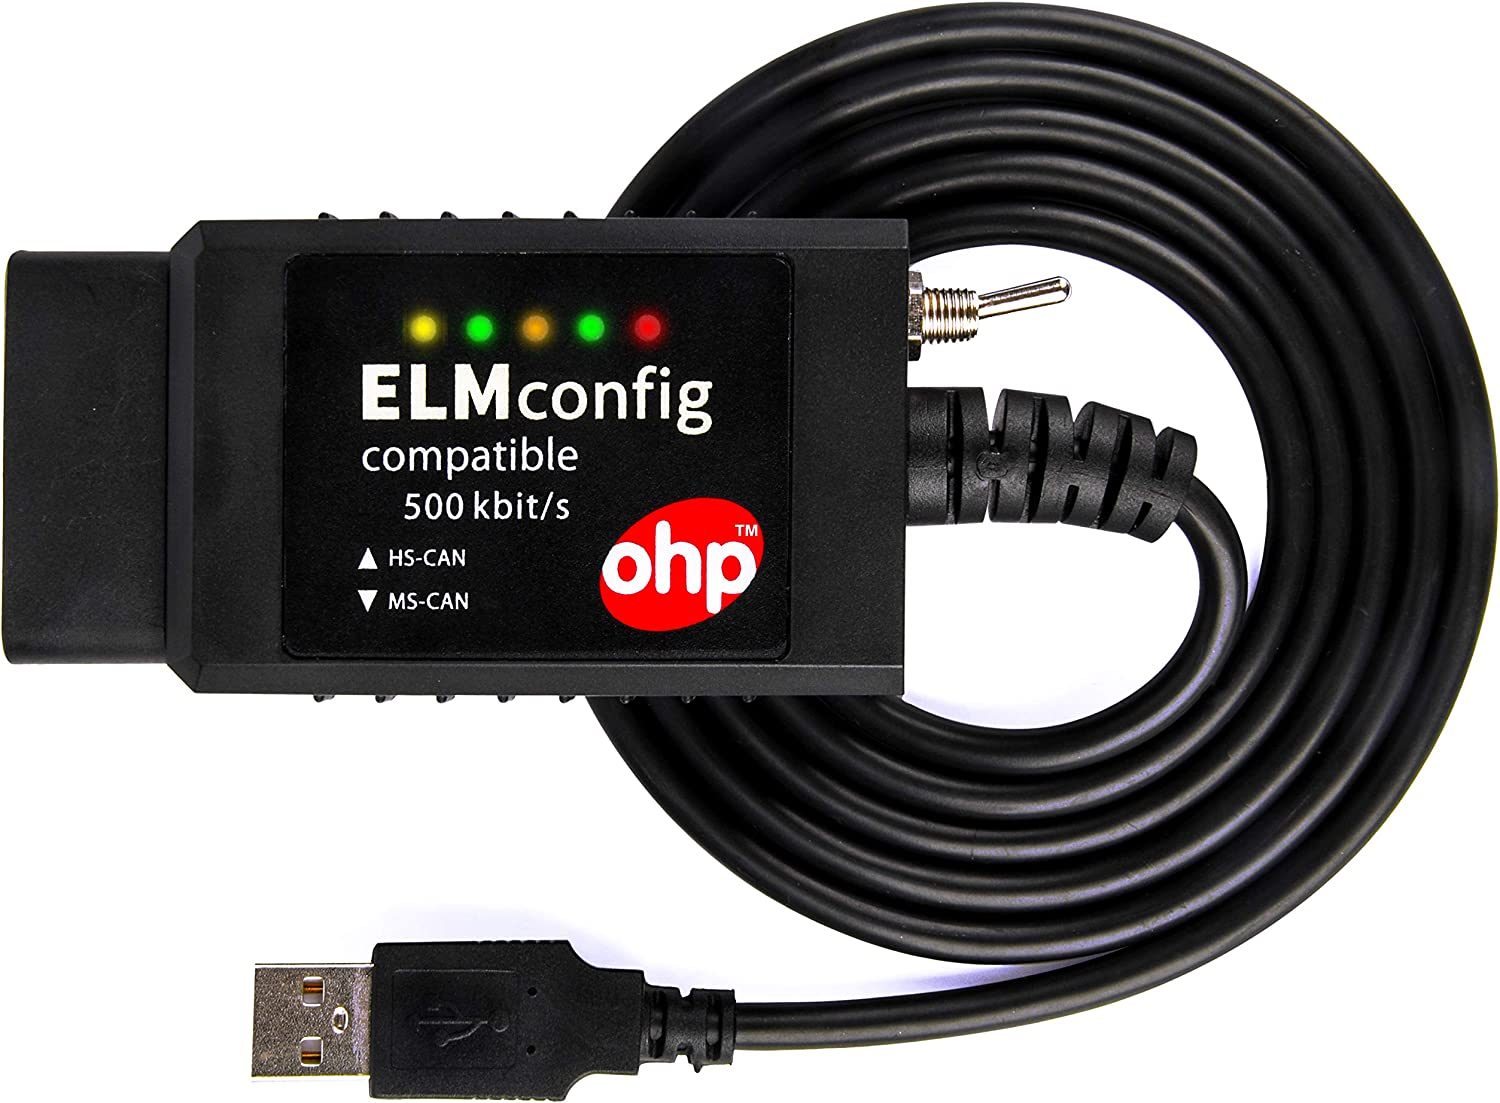 ELMconfig USB device 500kbit/s ELM327 compatible interface with MS-CAN switch for Forscan FoCCCus OBD2 diagnostics …